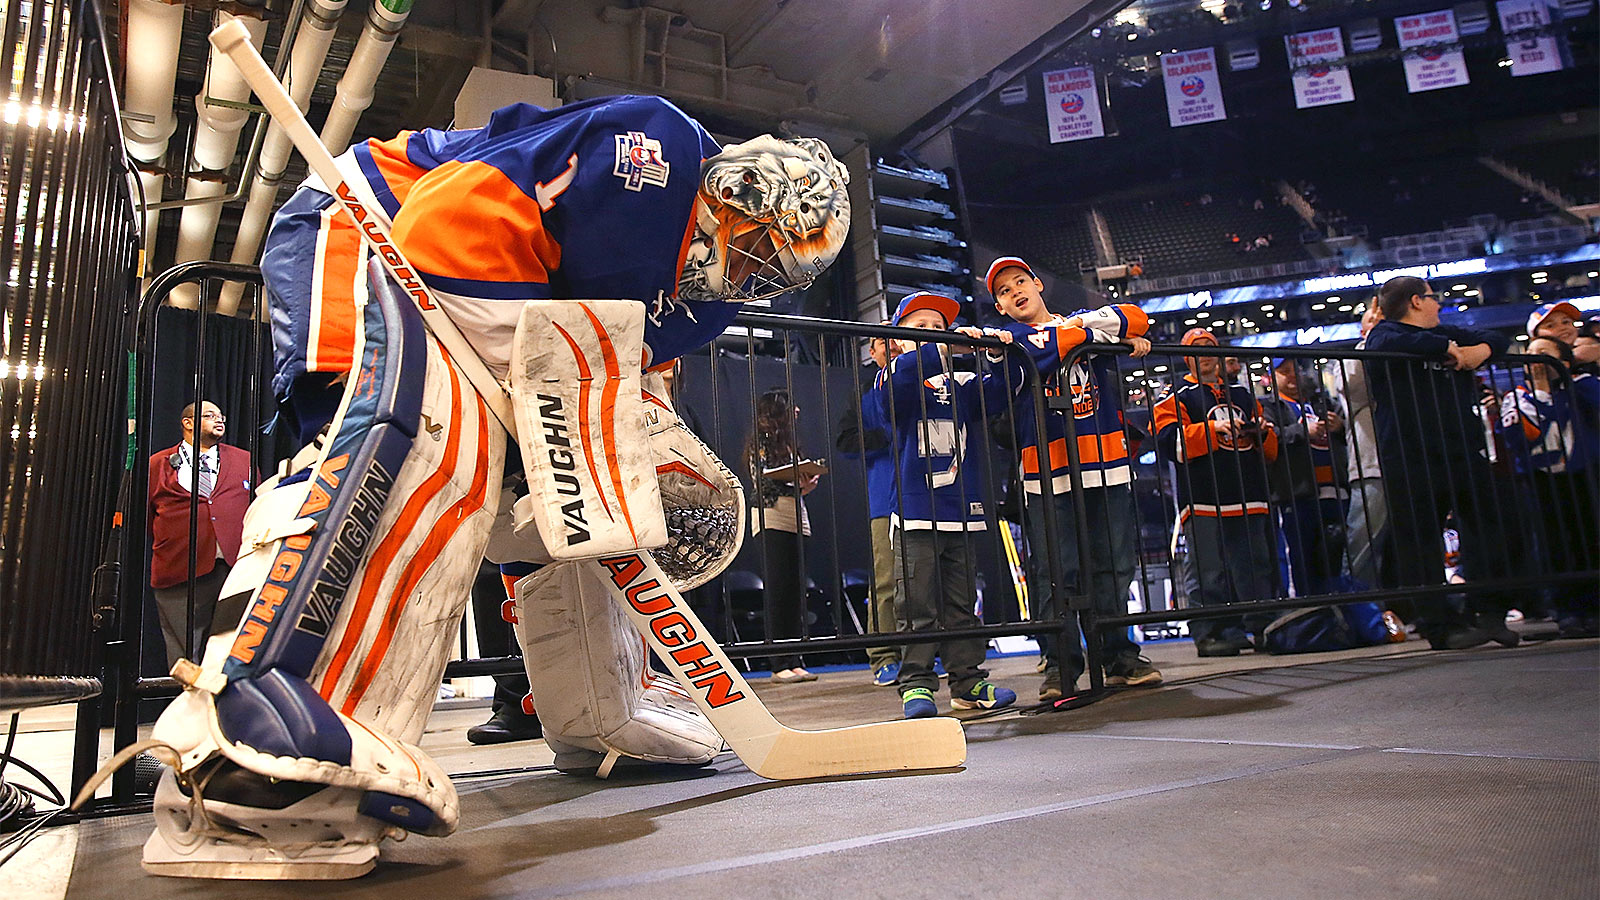 The Islanders can confidently roll with the hot goaltender